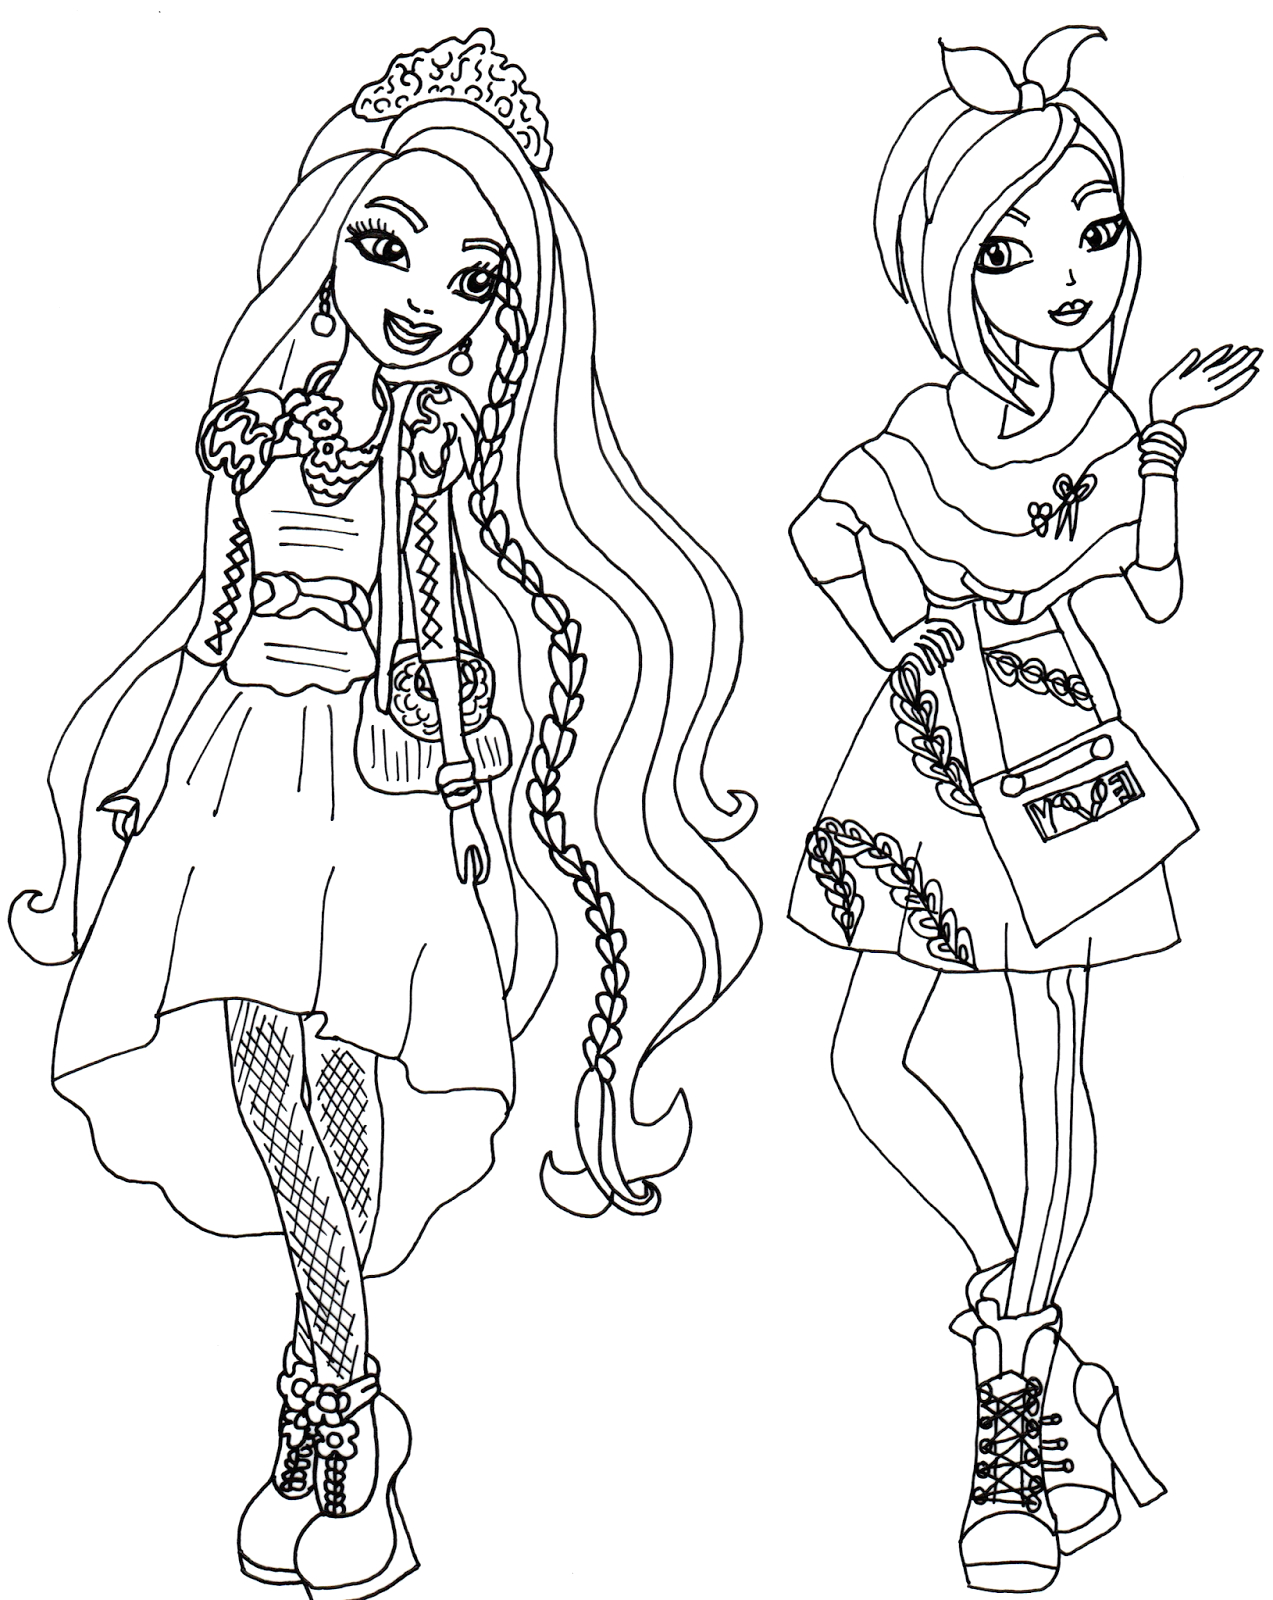 holly and poppy ohair ever after high